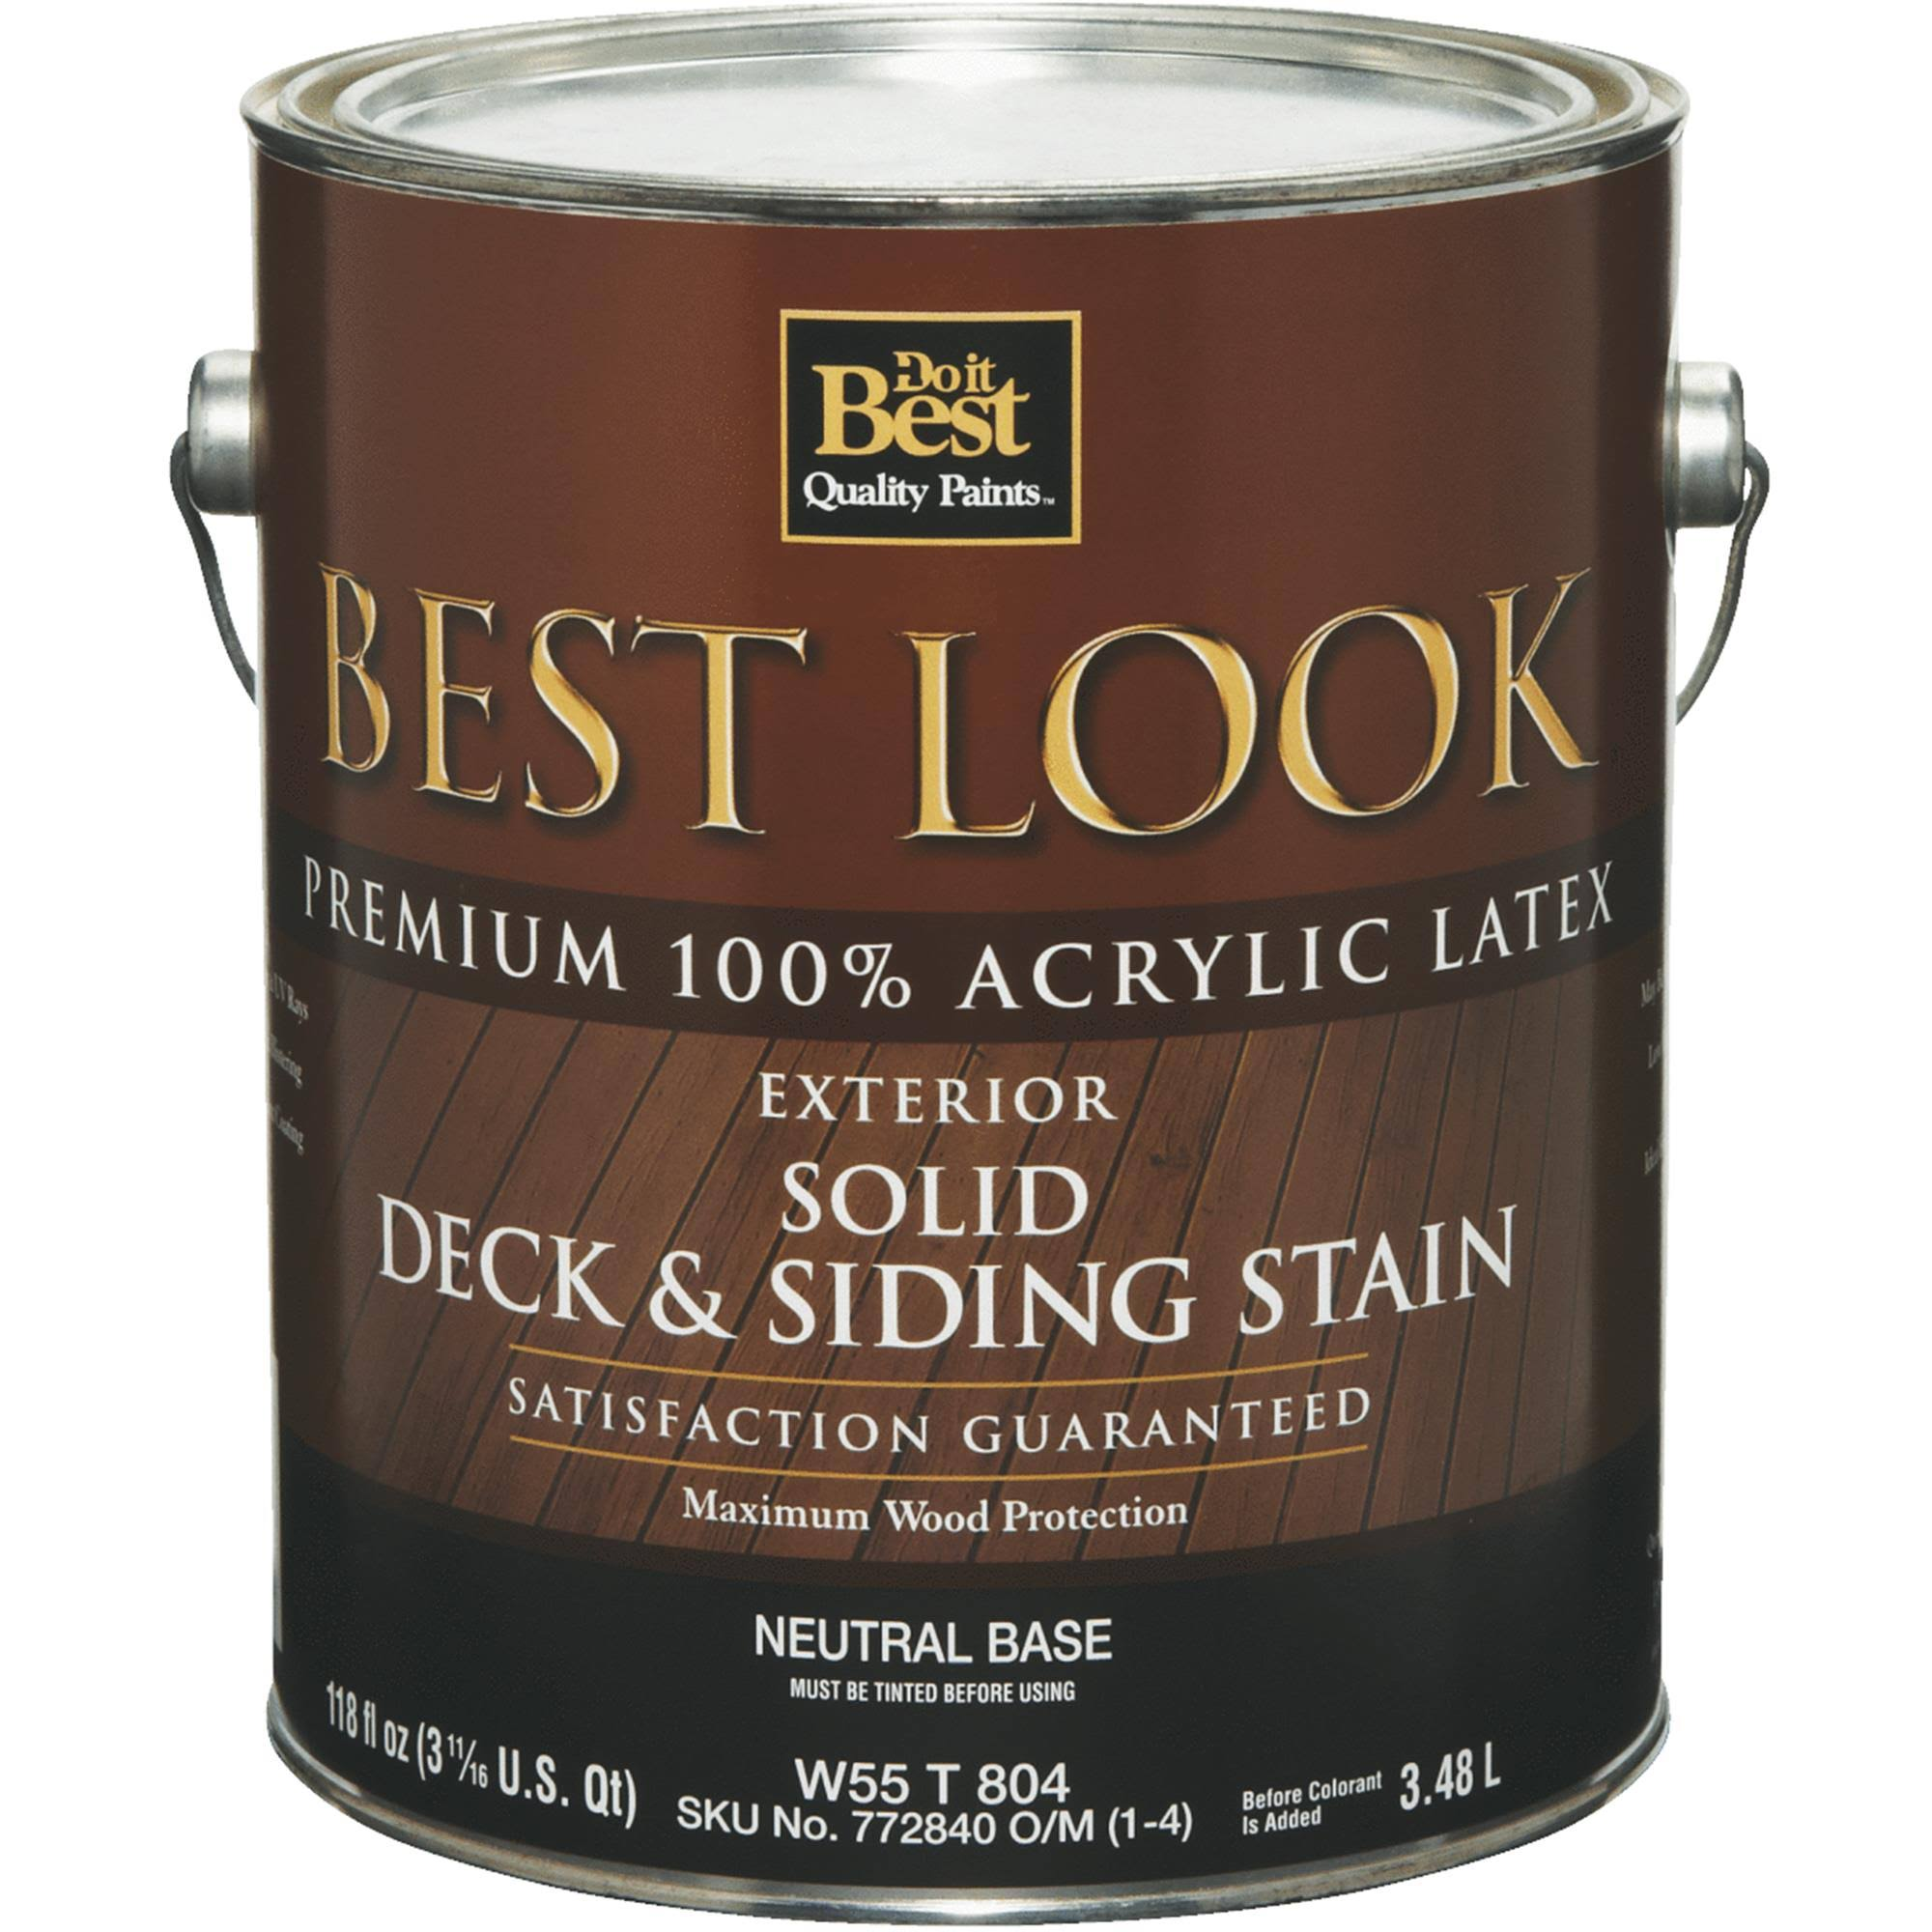 Do It Best Exterior Latex Deck and Siding Exterior Stain - Solid Color